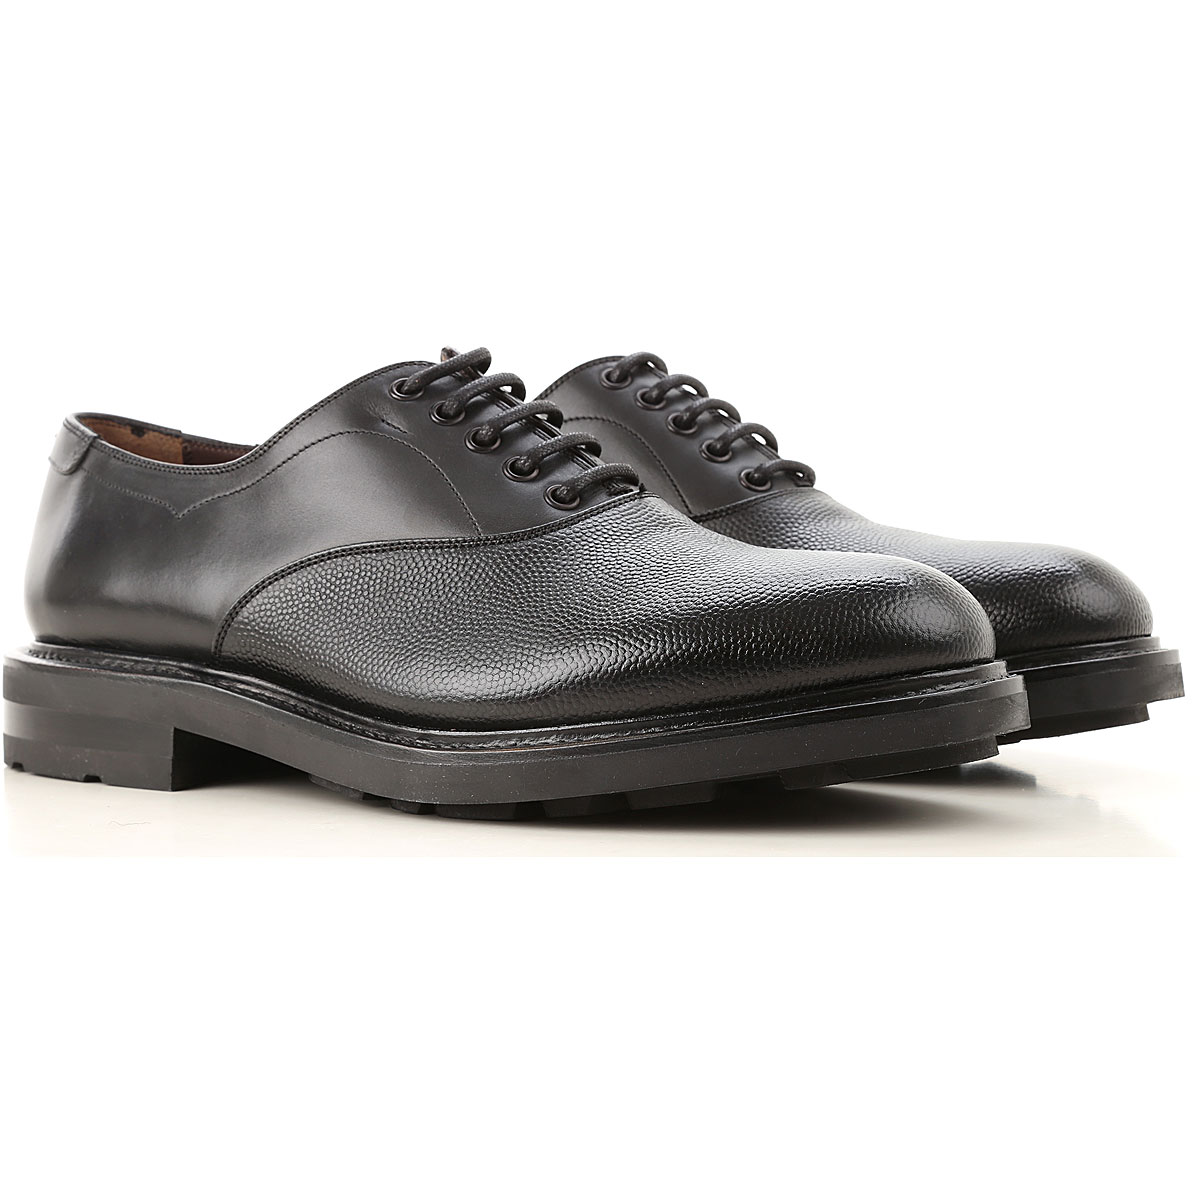 Salvatore Ferragamo Lace Up Shoes for Men Oxfords, Derbies and Brogues On Sale, Black, Leather, 2019, 10 10.5 11 12 7 8 9 9.5